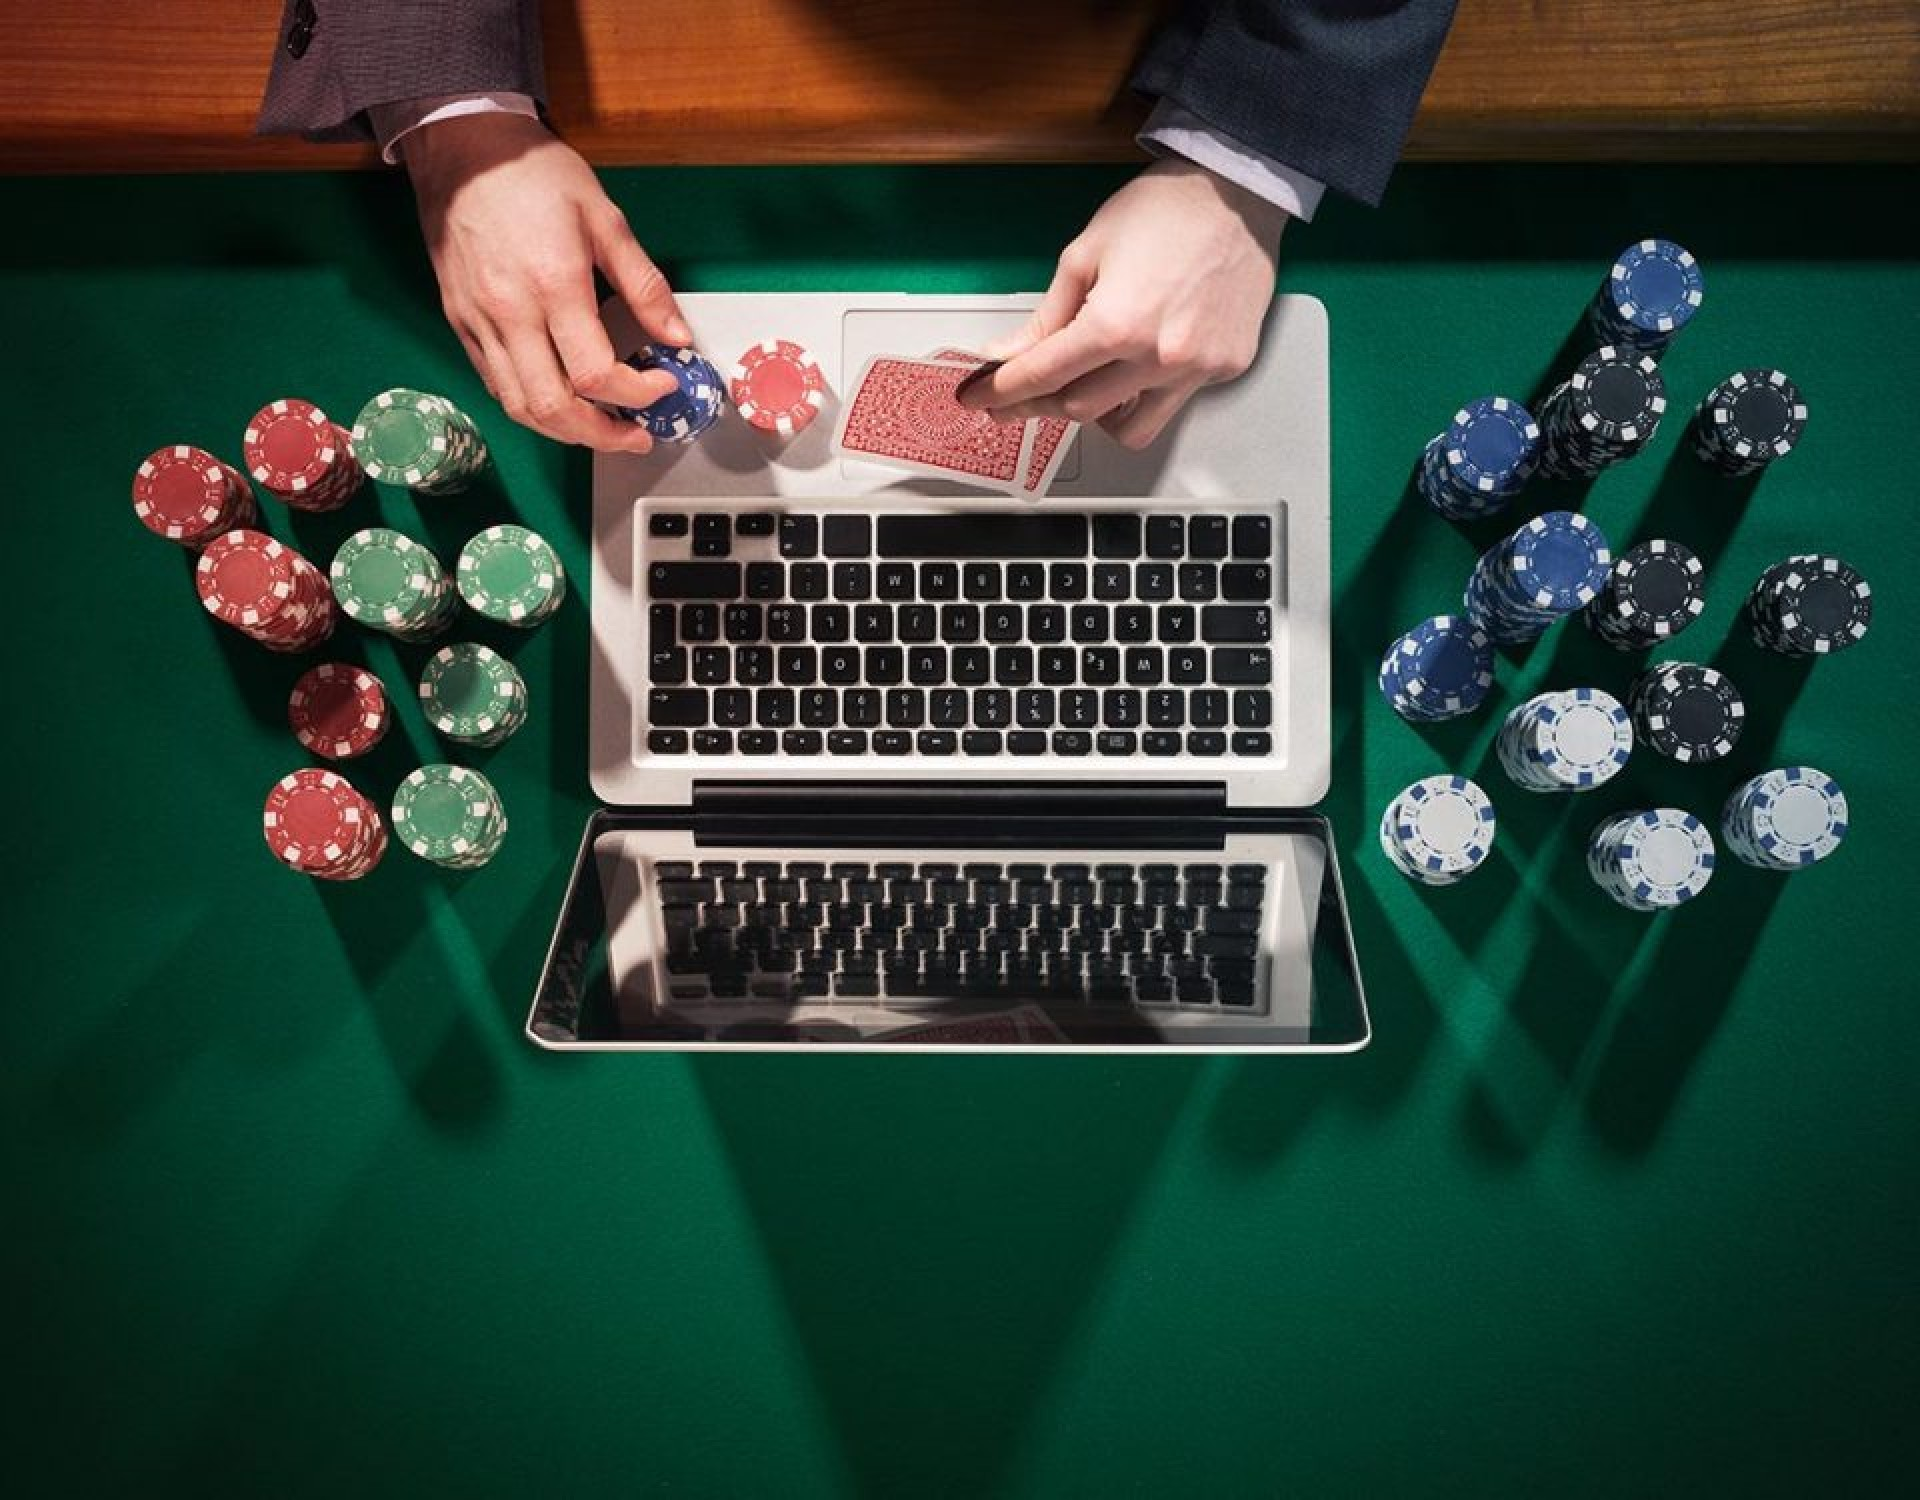 888 Holdings Stretches its iGaming Contract With Delaware